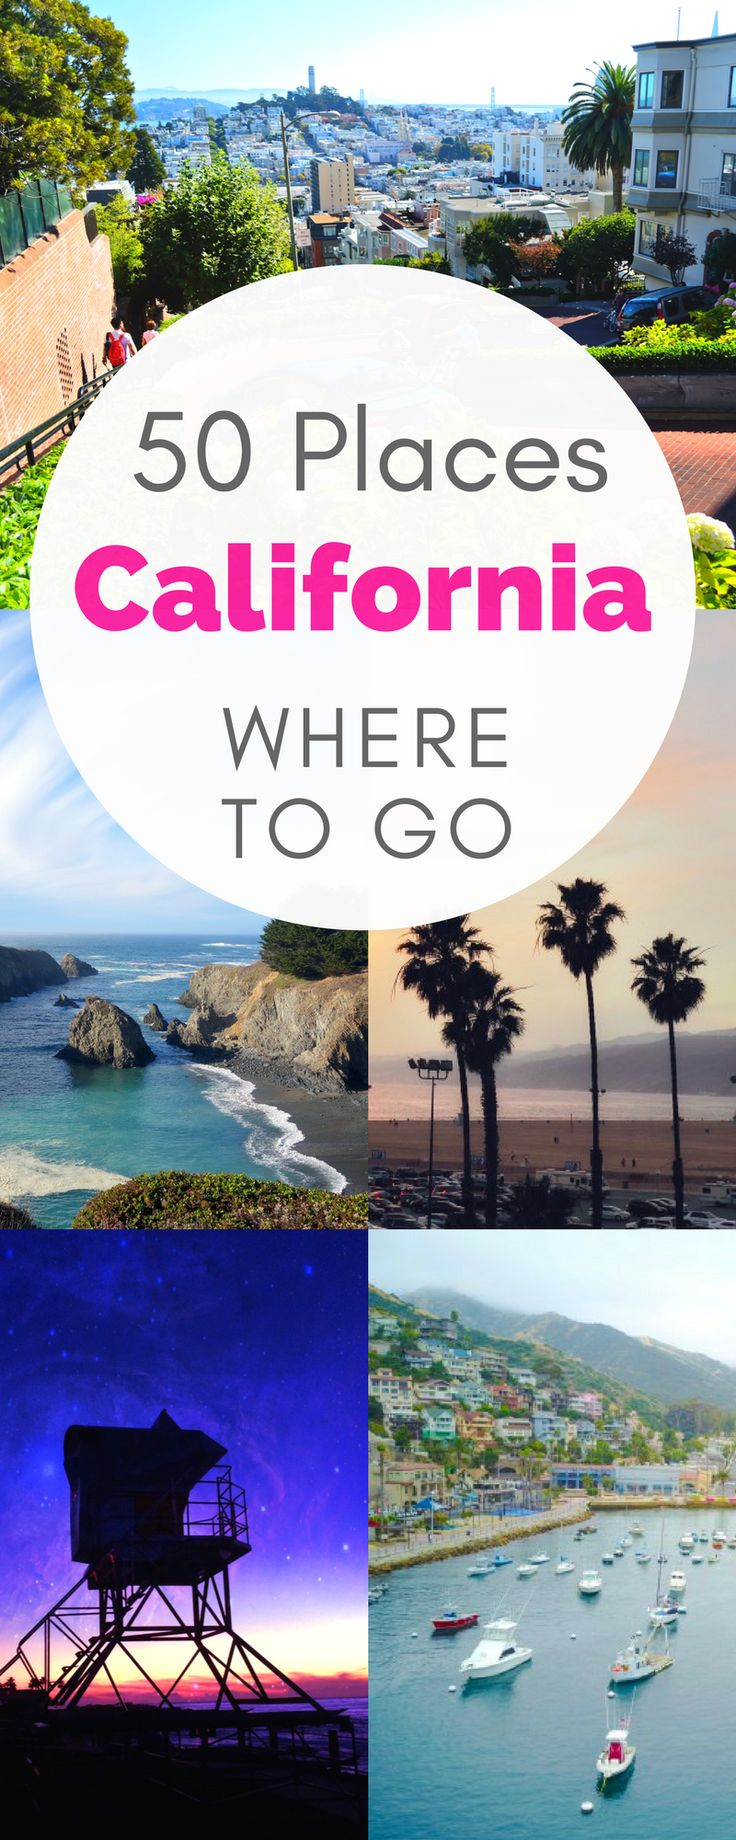 CALIFORNIA IS BEAUTIFUL! Check out the 50 most beautiful places in California, to use on any California itinerary and when figuring out where to go in California! It's such a varied state full of mountains and castles and purple sand beaches, and more!